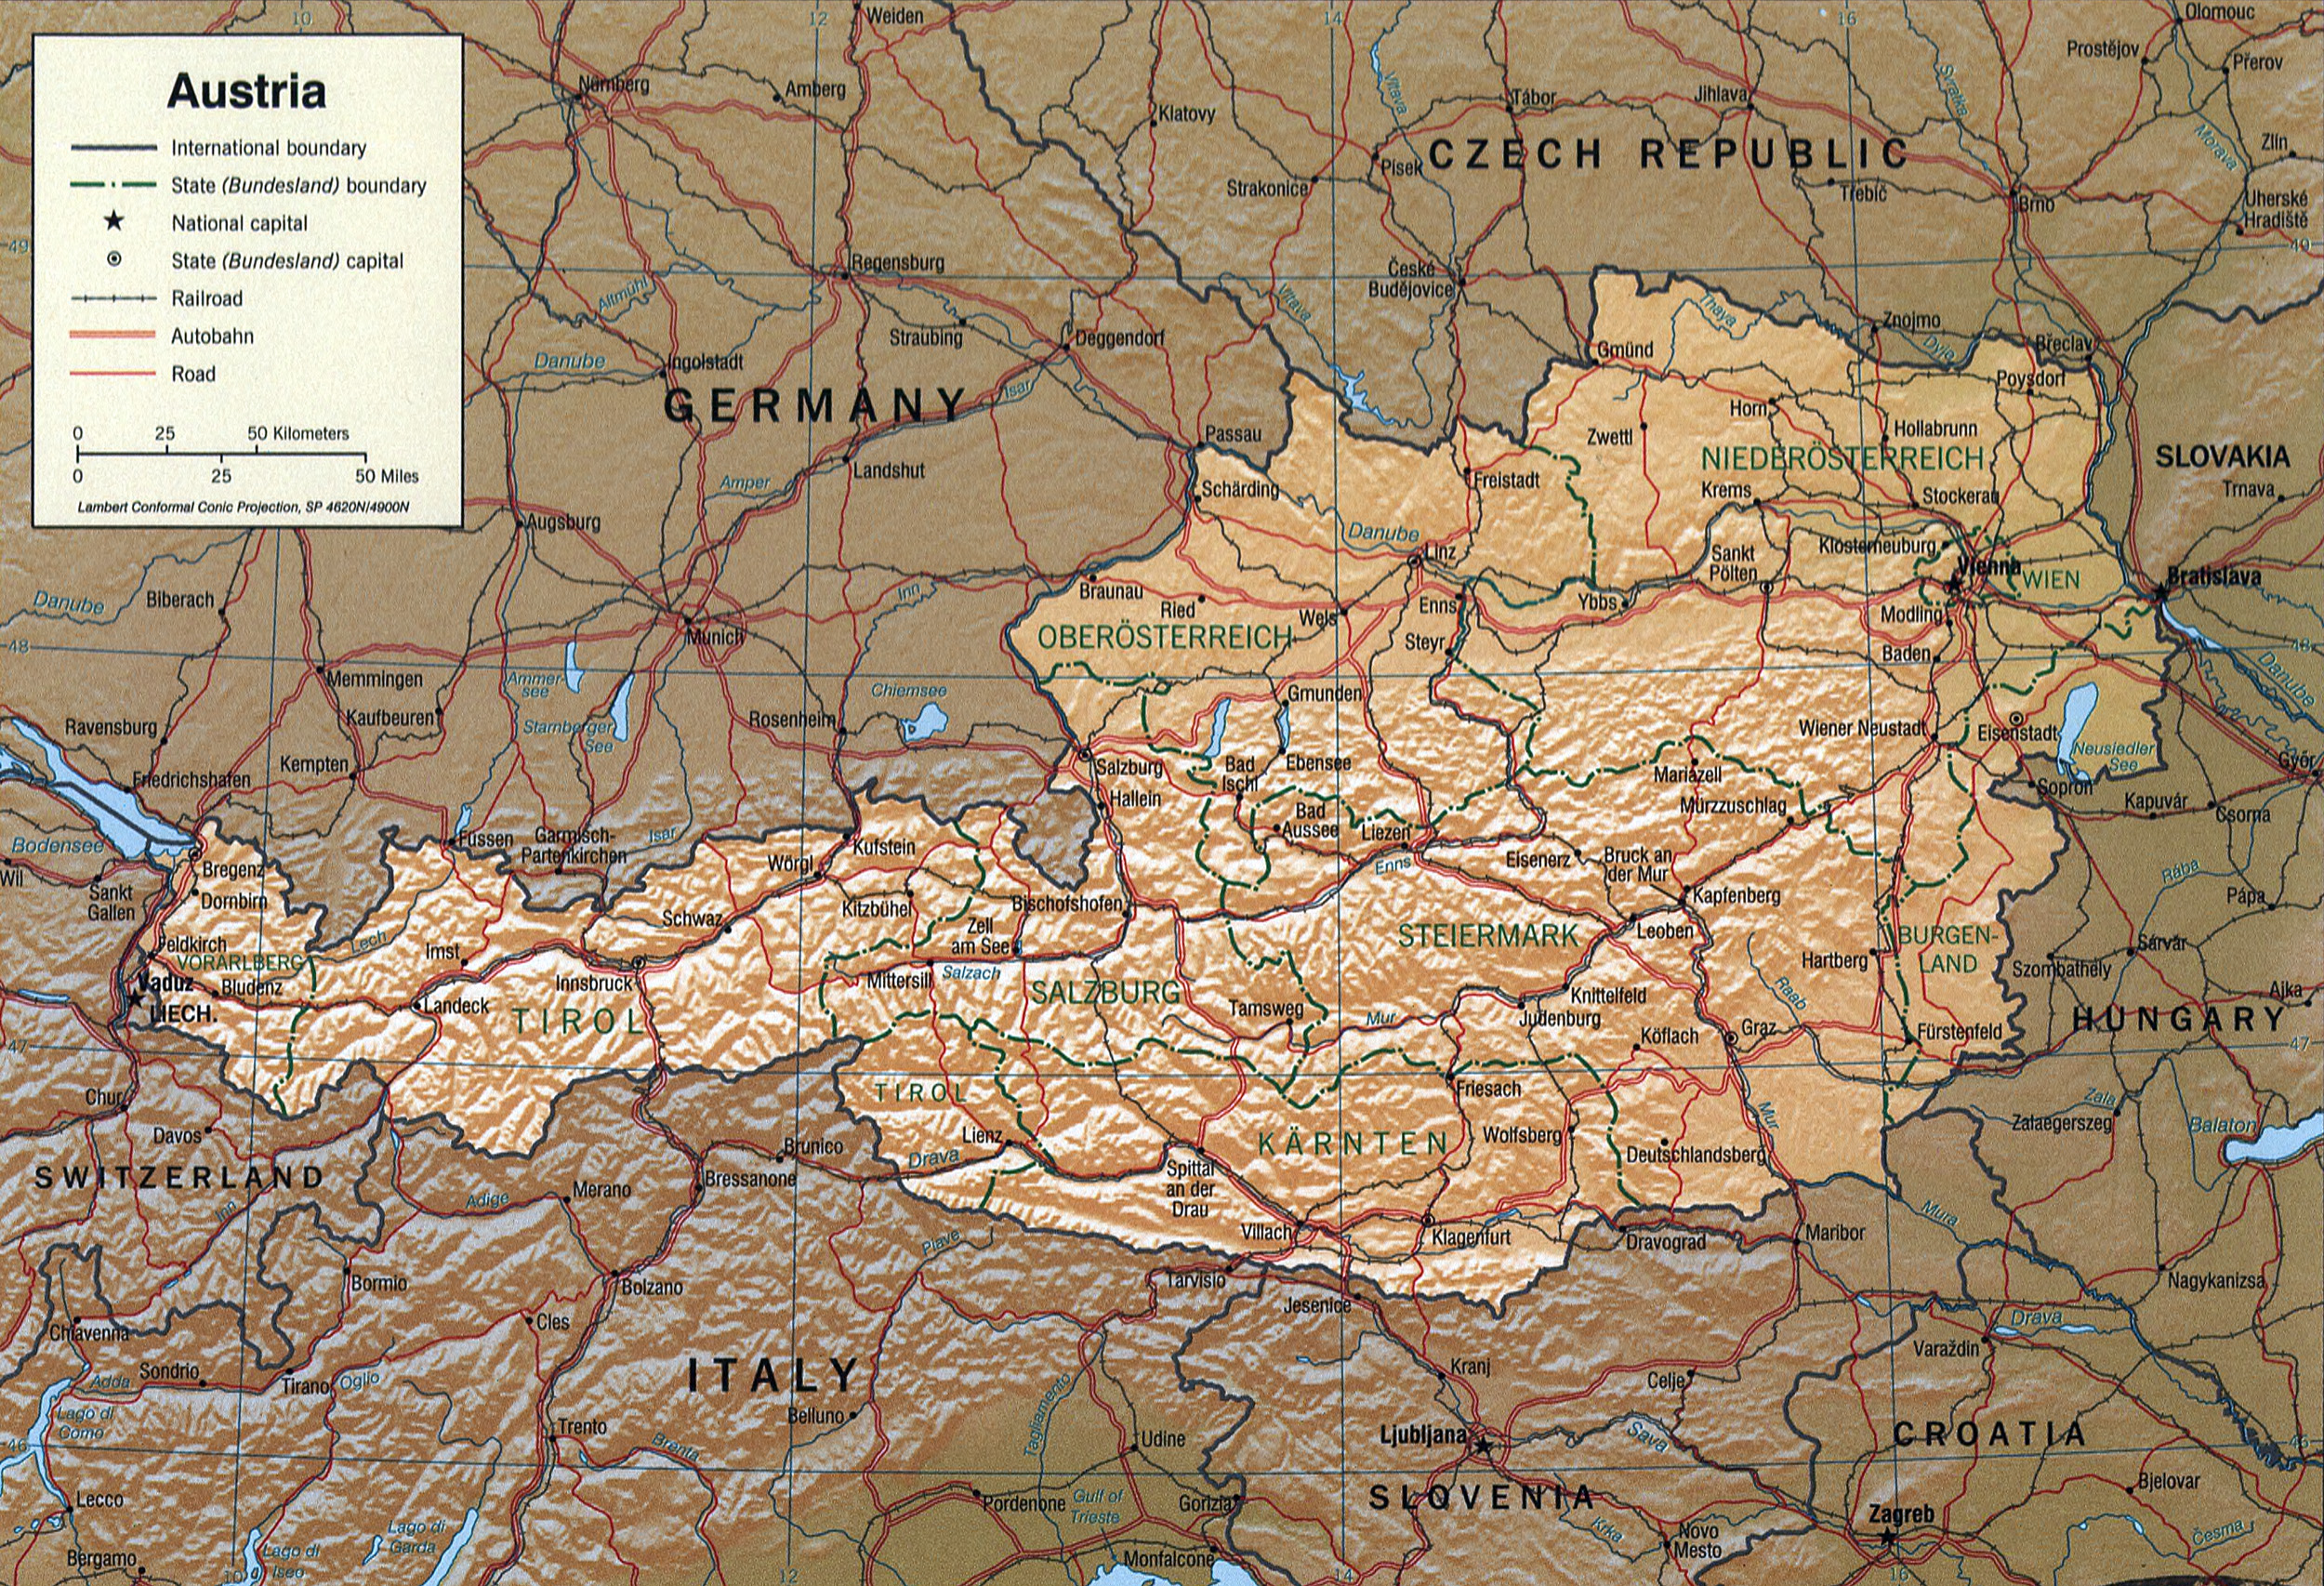 Detailed Map of Austria